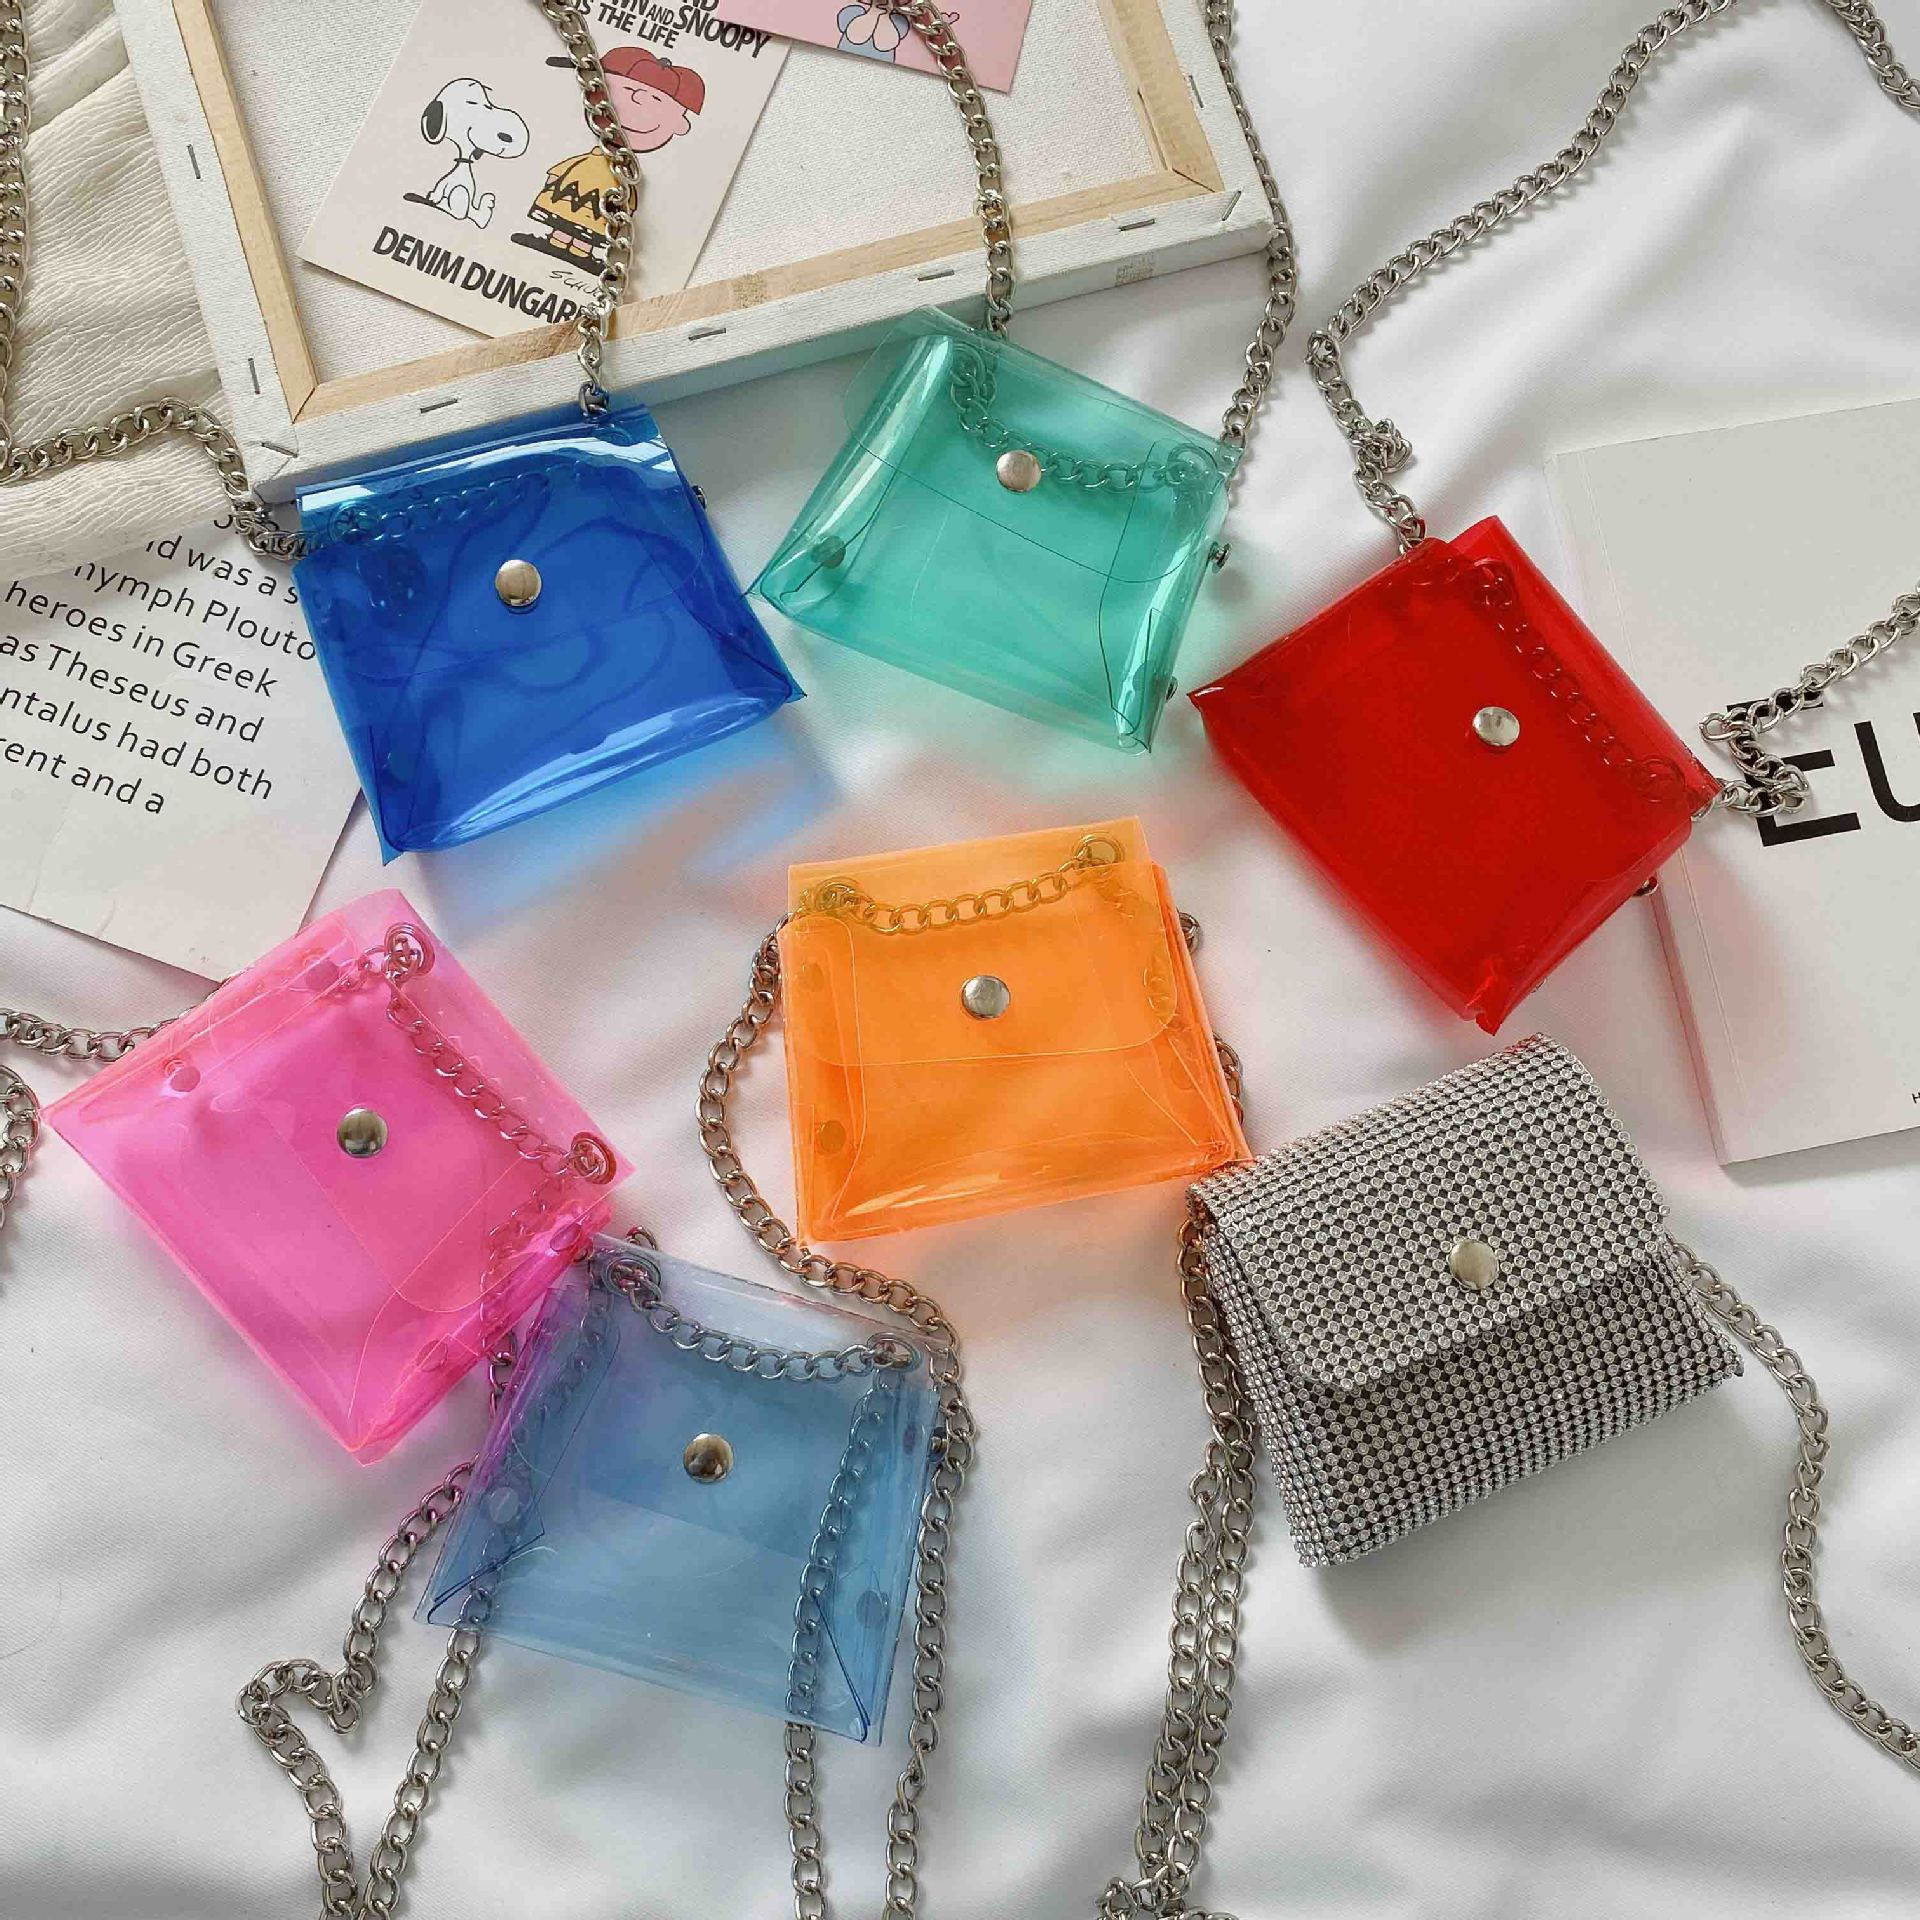 Kids Mini Coin Bag 2020 Summer PVC Transparent Jelly Purse Baby Girls Small Zero Wallet Pouch Kid Clear Bag Money Change Purses